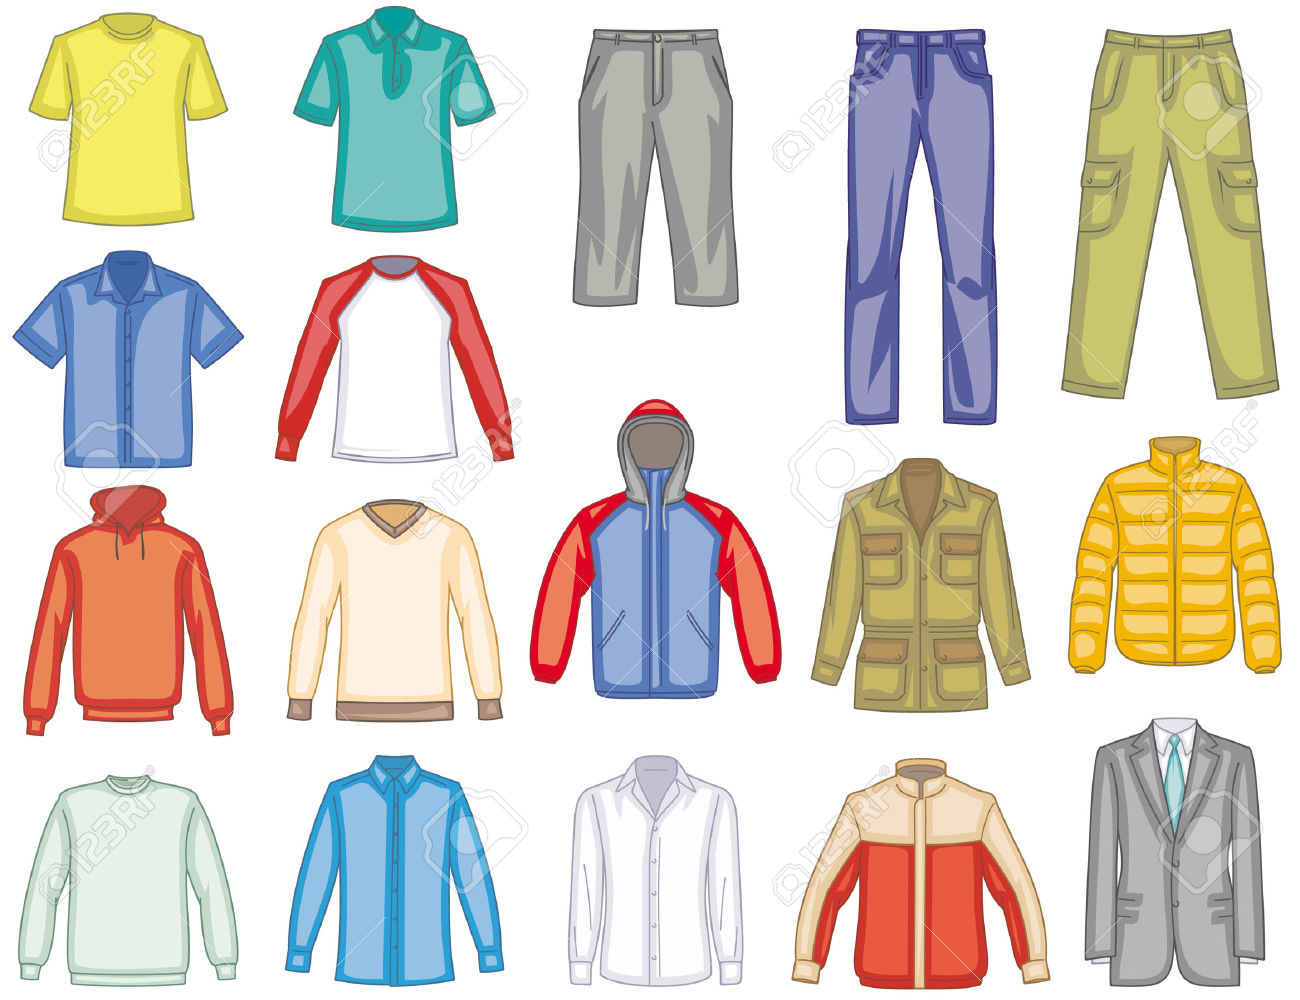 clothing clip art #20